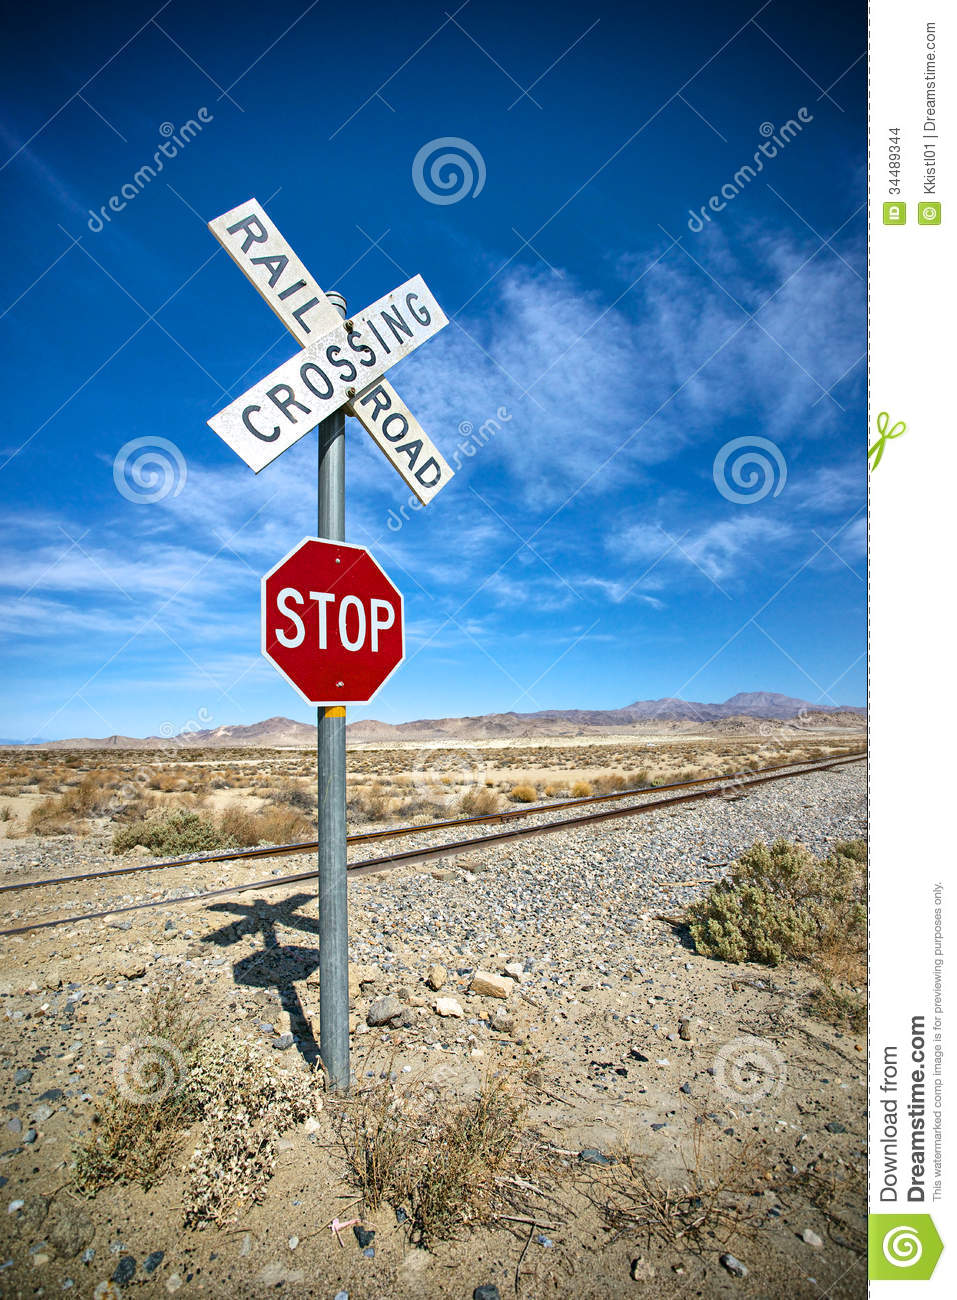 Desert Stop Sign and Railroad Crossing